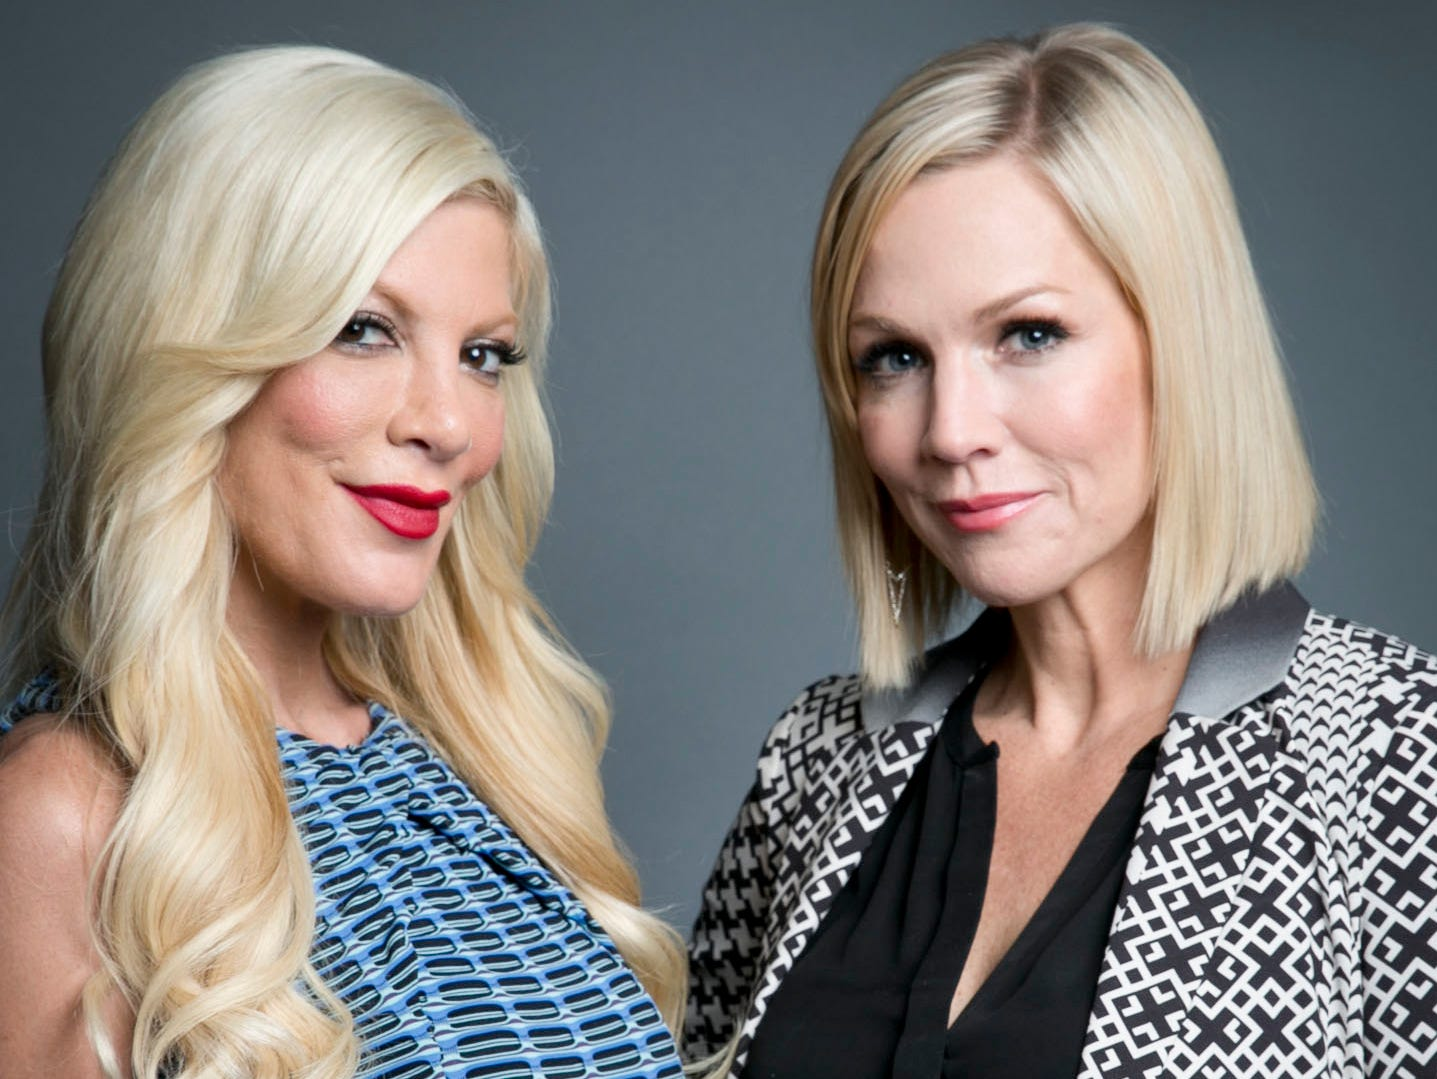 """Garth has maintained her friendship with co-star Tori Spelling, who played West Beverly High classmate Donna Martin for nearly 30 years.  In 2014, they re-teamed for a ABC Family series, """"Mystery Girls."""" Four years later, during the 2018 California wildfires, Spelling publicly thanked Garth for welcoming her family and pets into her home after they were forced to evacuate."""